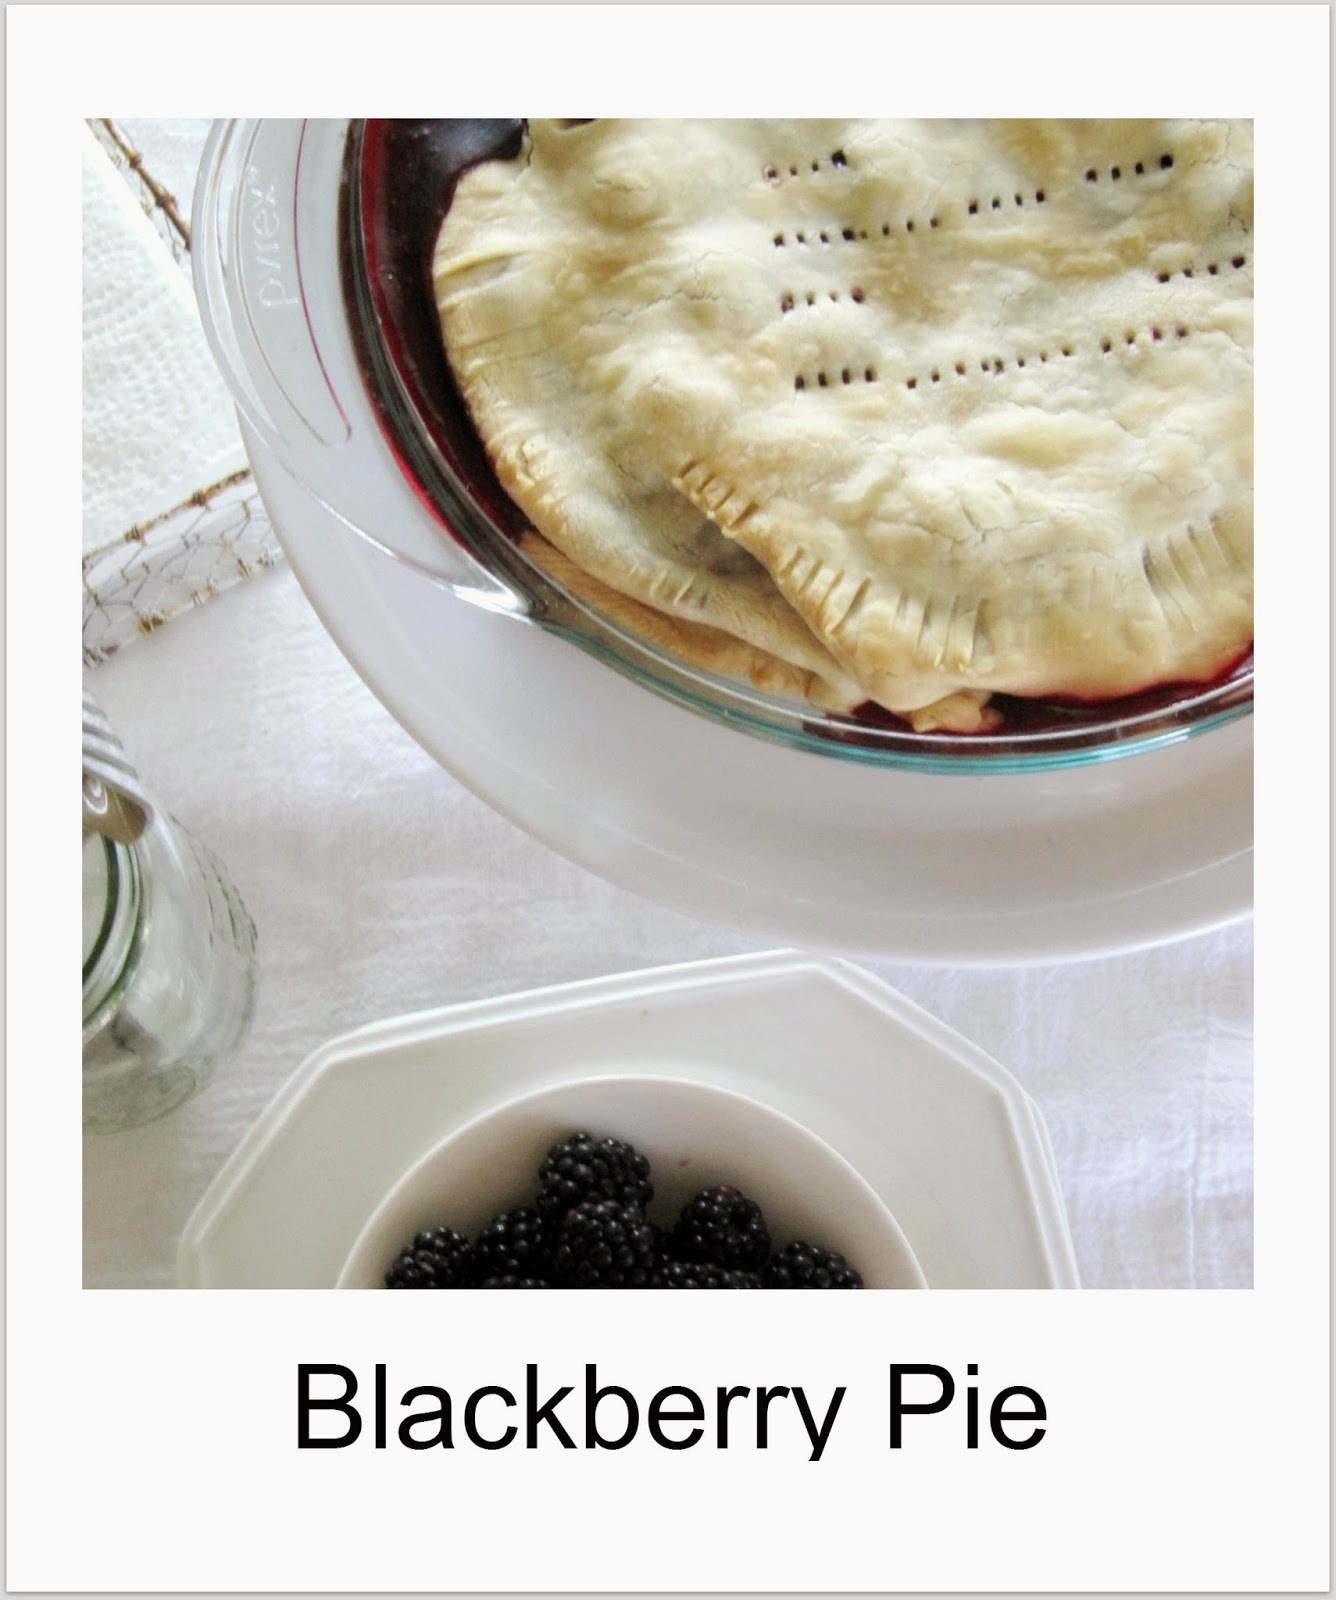 http://thewickerhouse.blogspot.com/2012/09/blackberry-pie.html